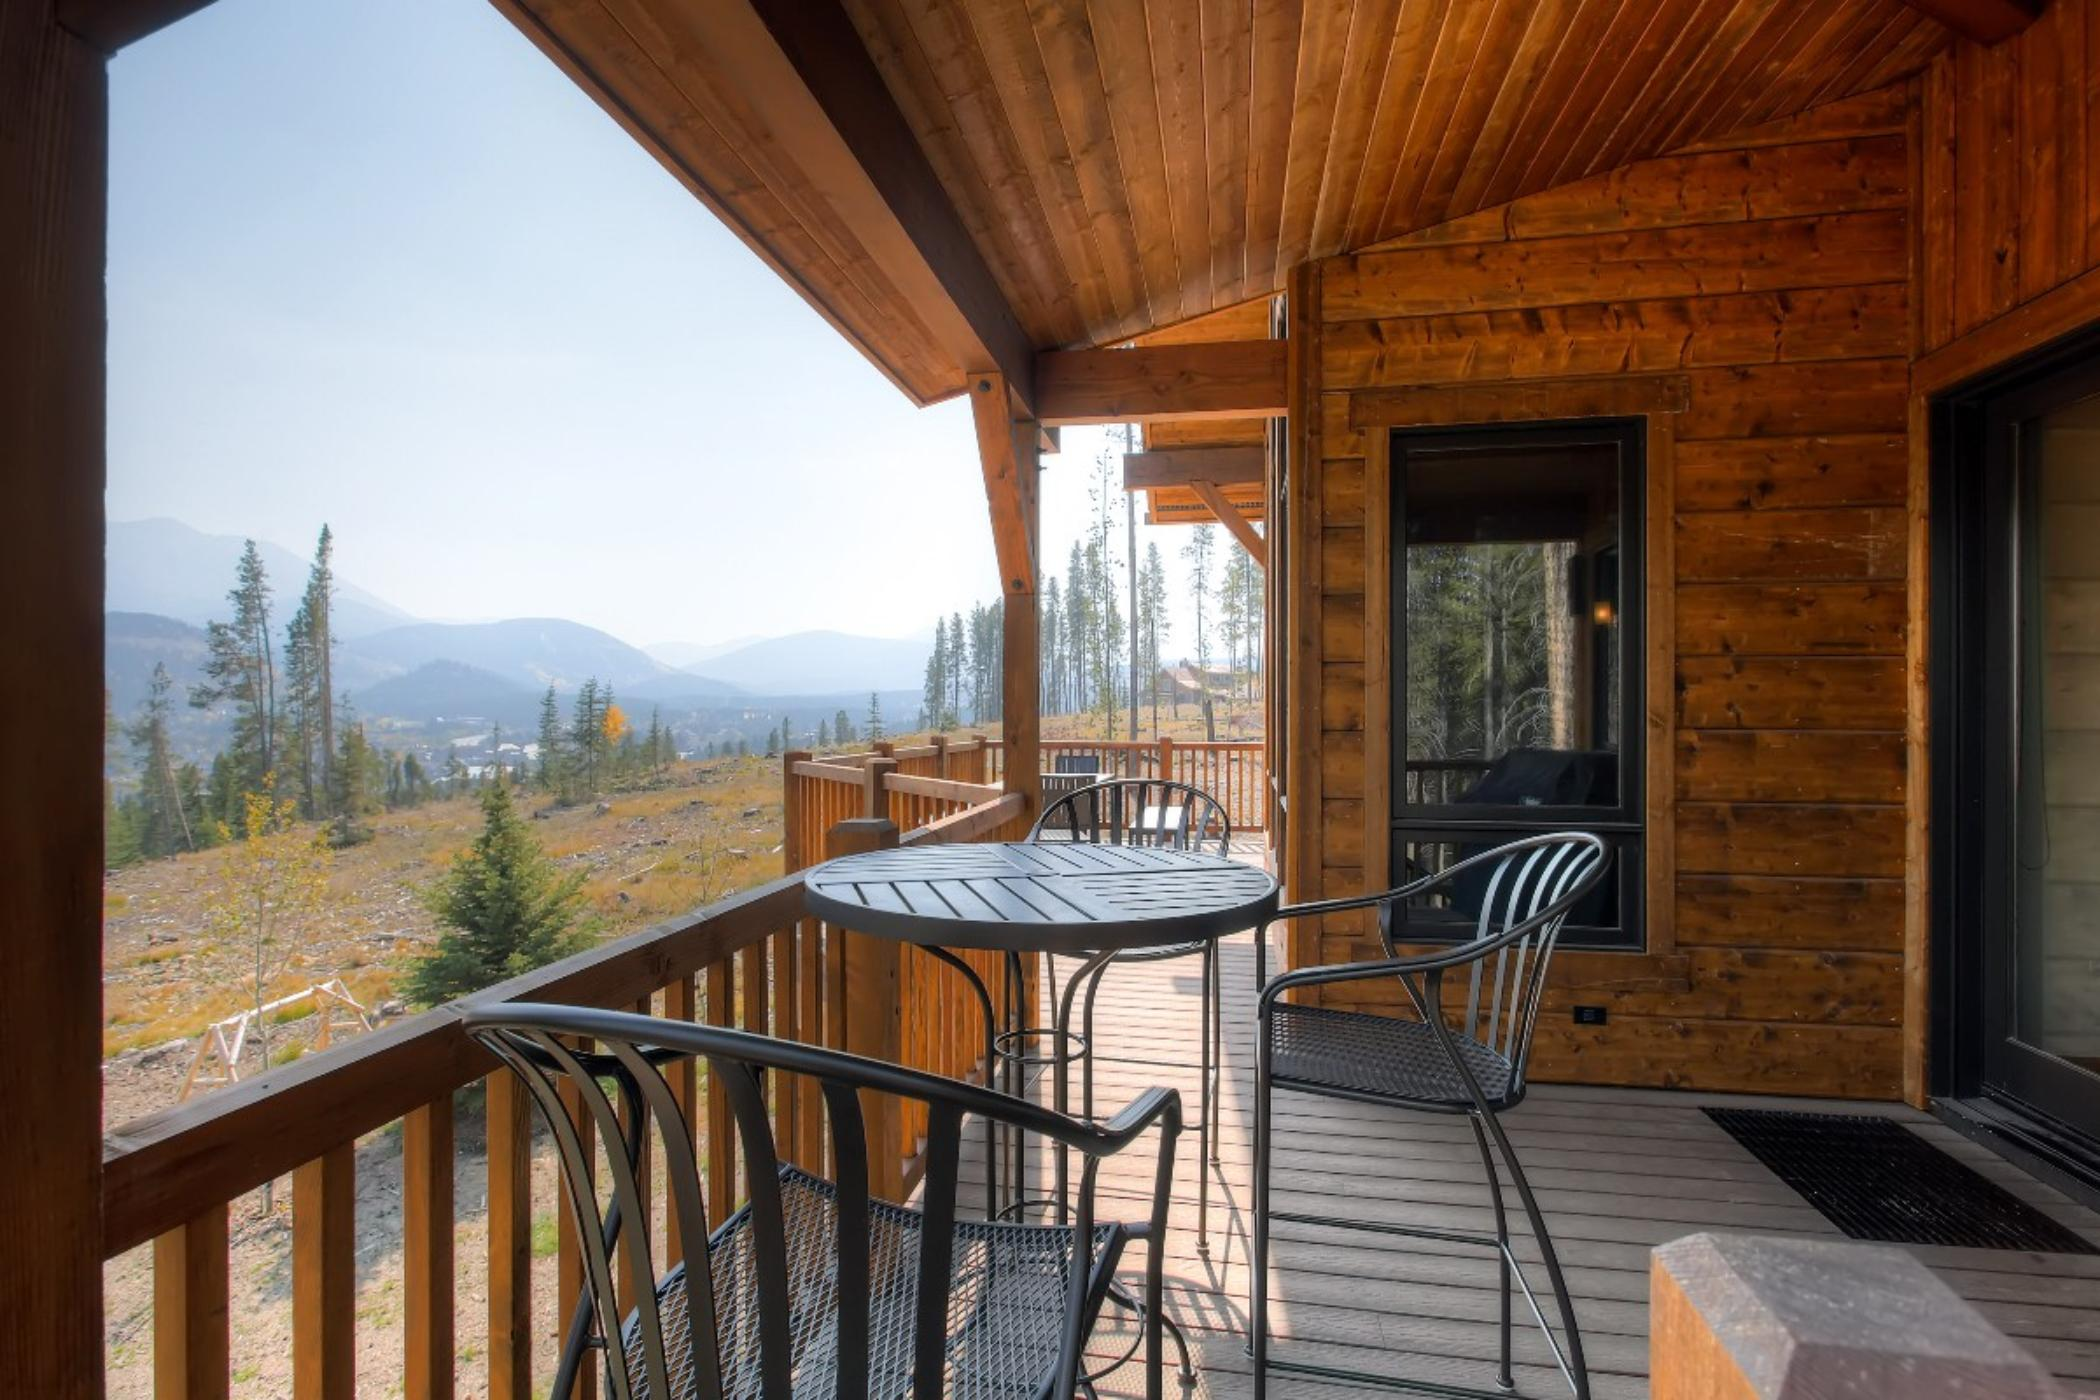 Cawha Outlook Chalet